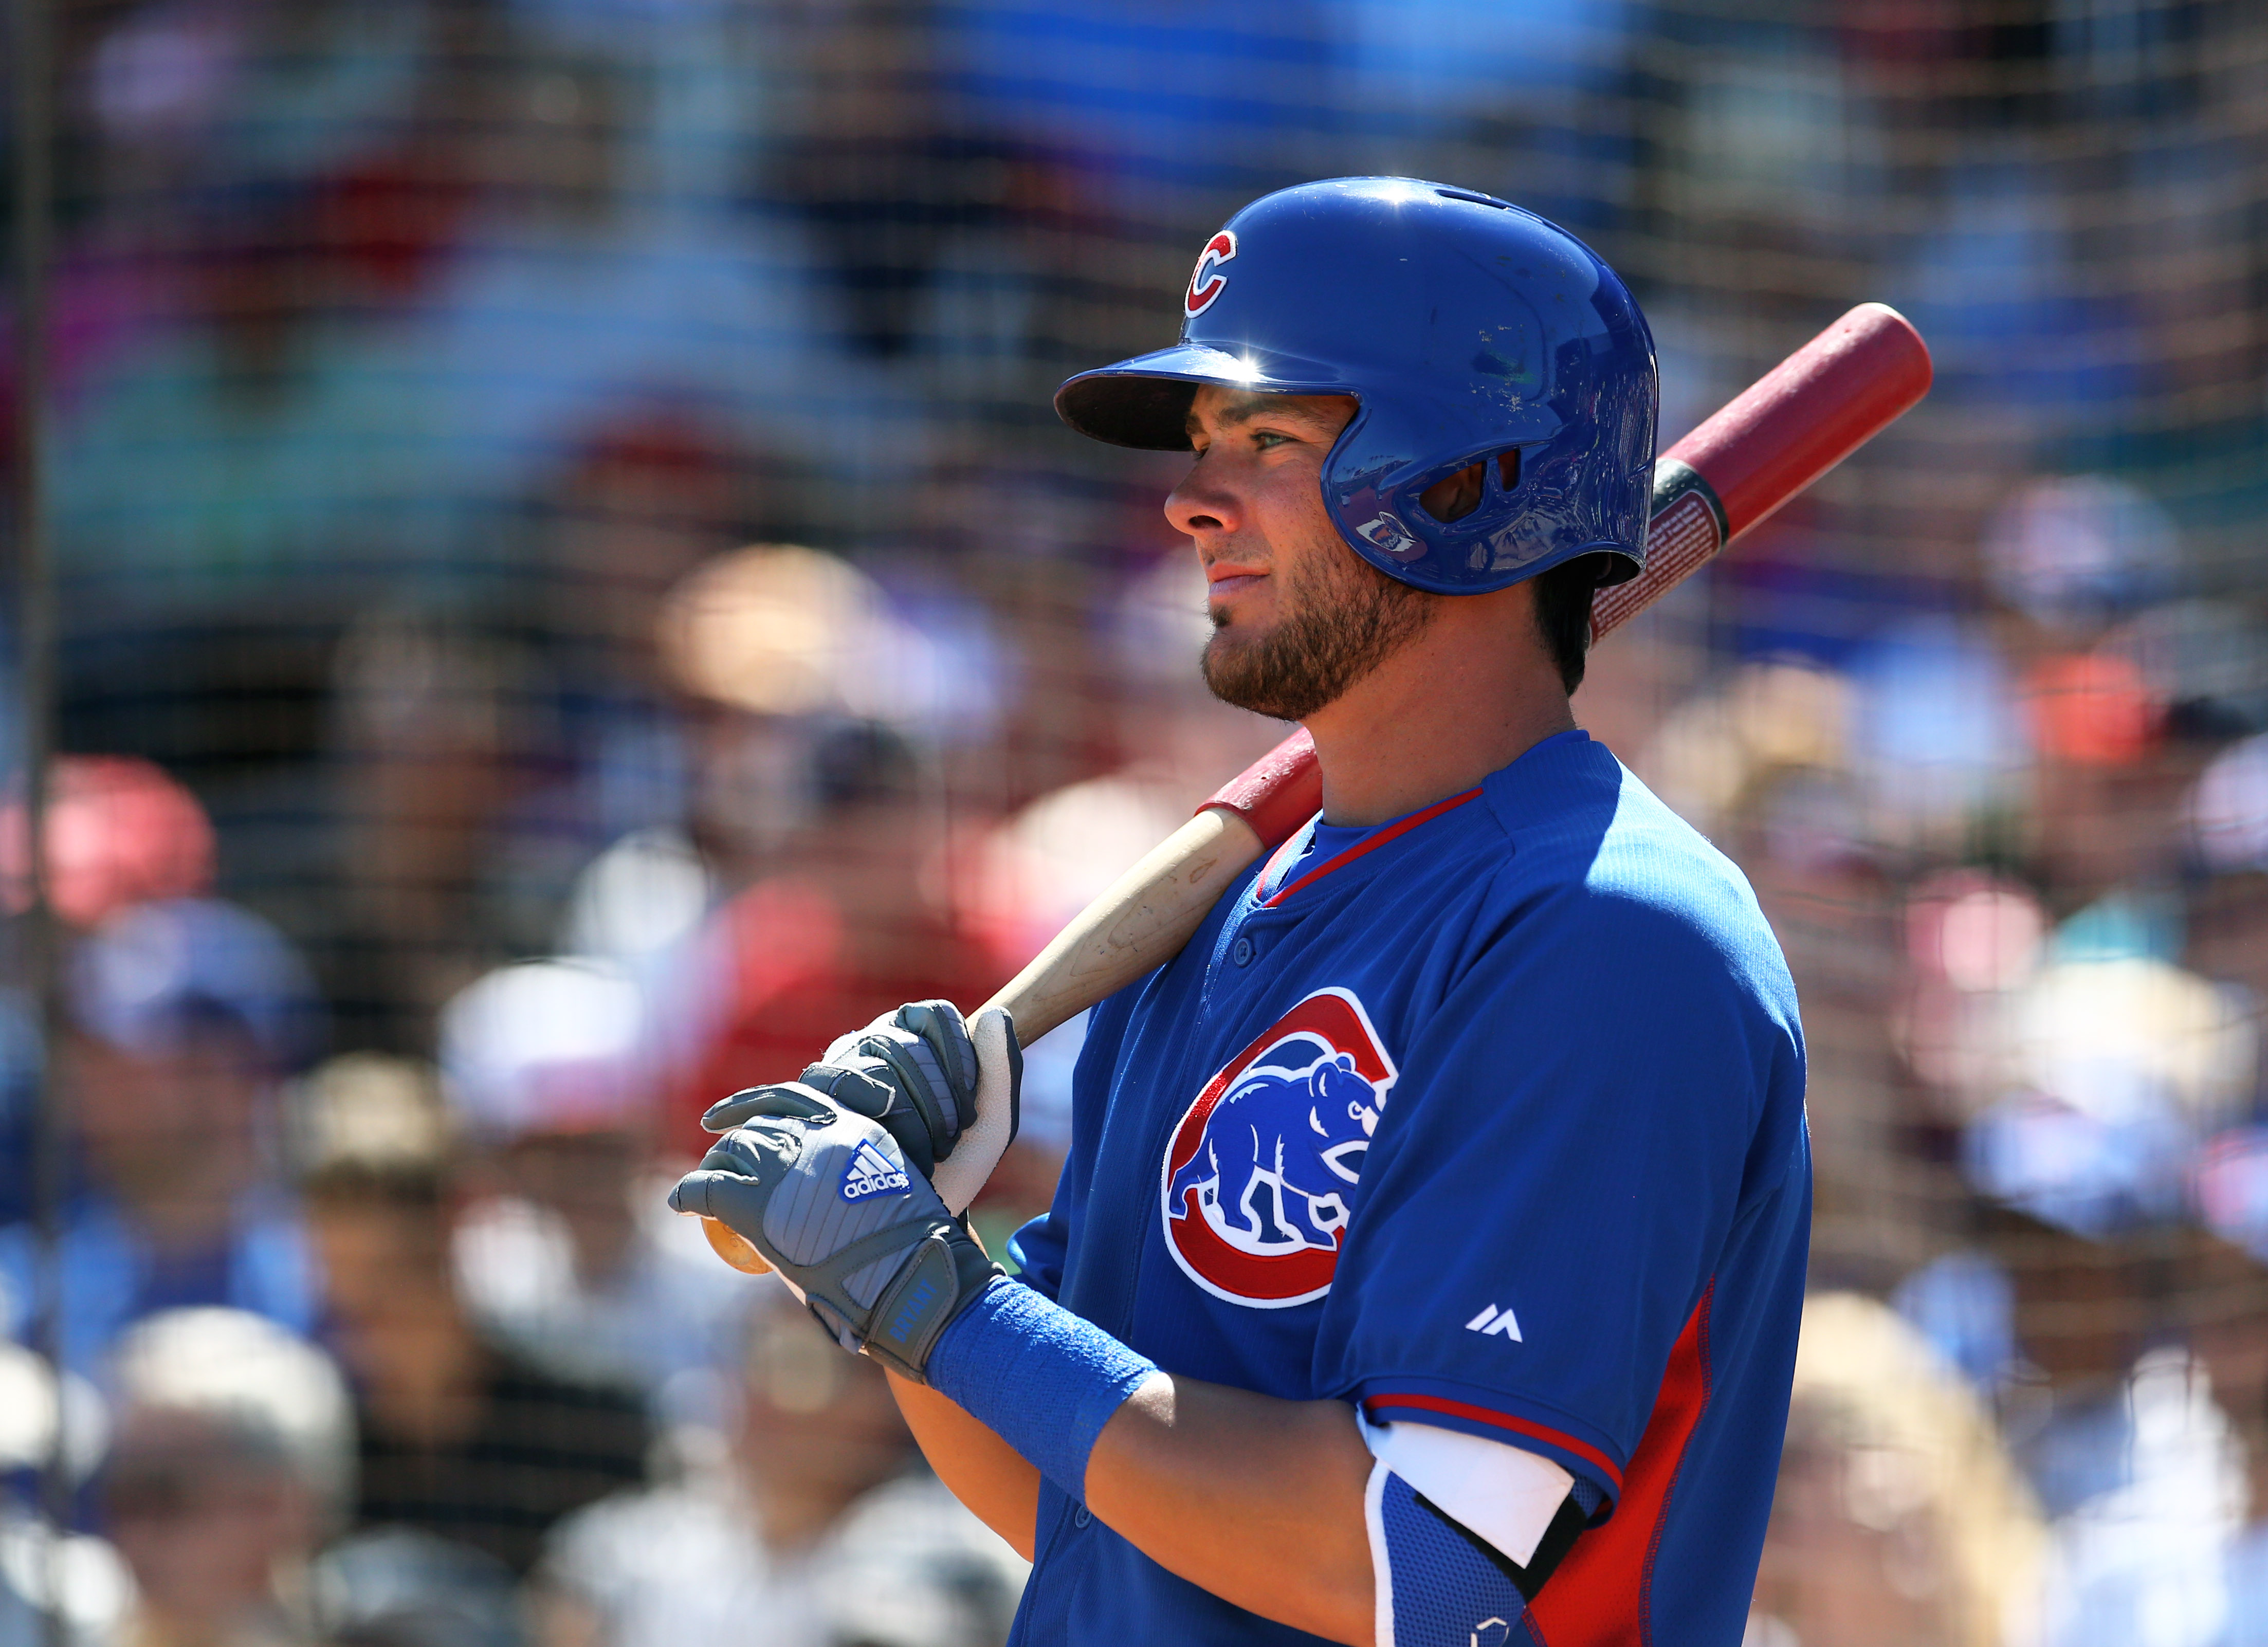 Cubs prospect Kris Bryant's prodigious power has been on display this spring. (USAT)